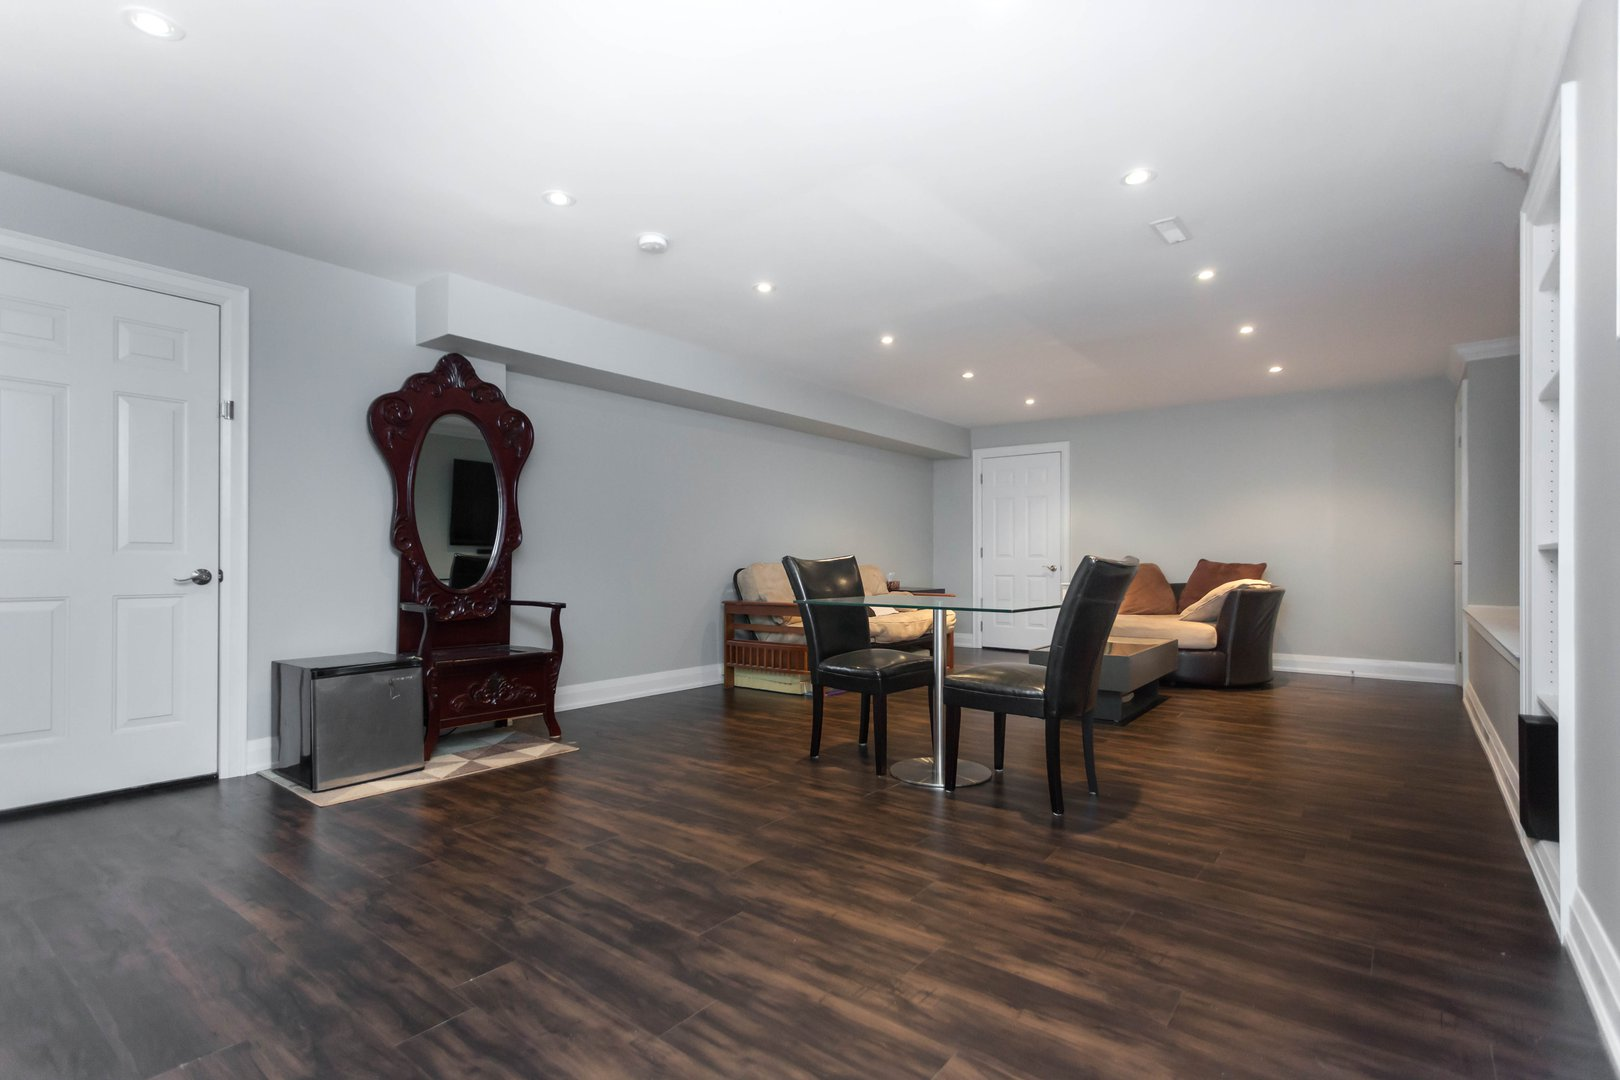 House for rent at 84 Laurel Avenue, Etobicoke, ON. This is the dining area with hardwood floor.